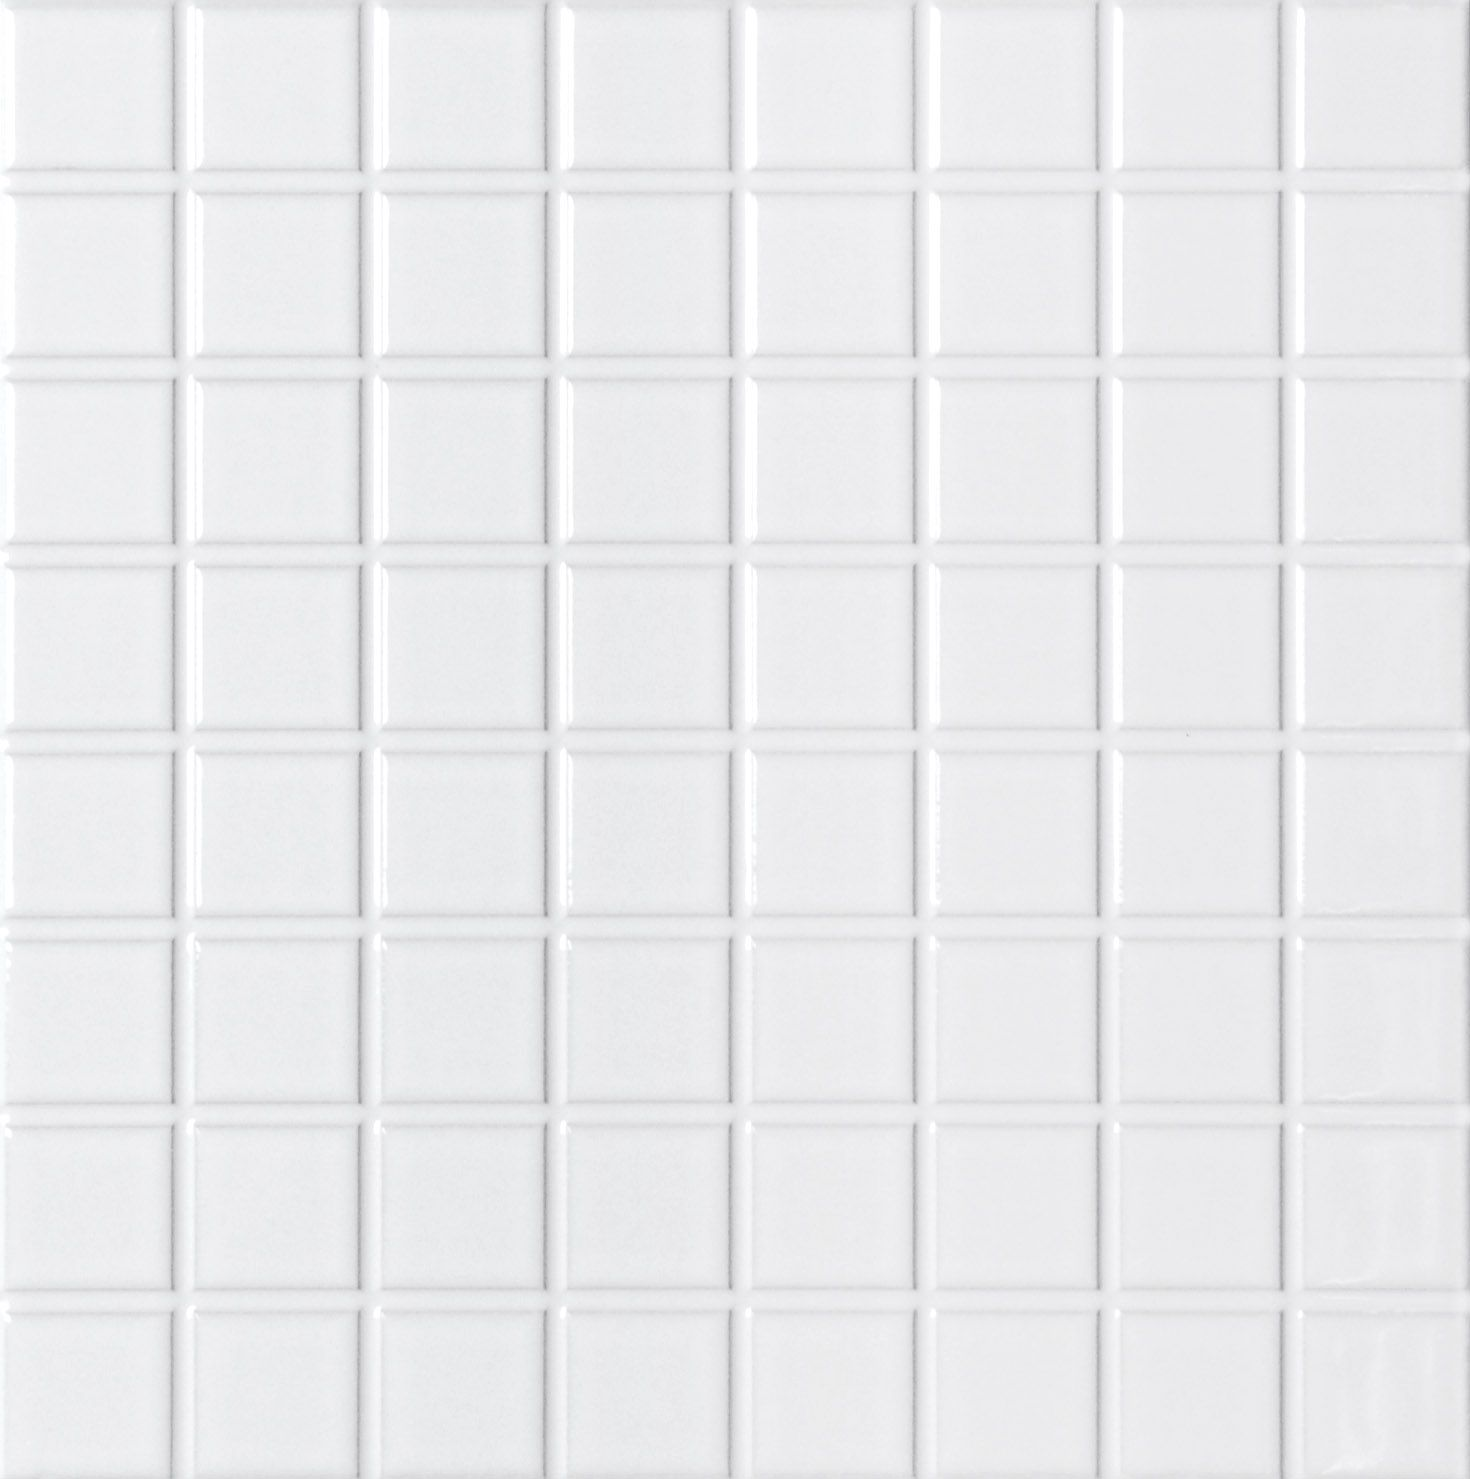 Carrelage blanc brillant carrelage blanc brillant sol 28 for Peinture carrelage blanc